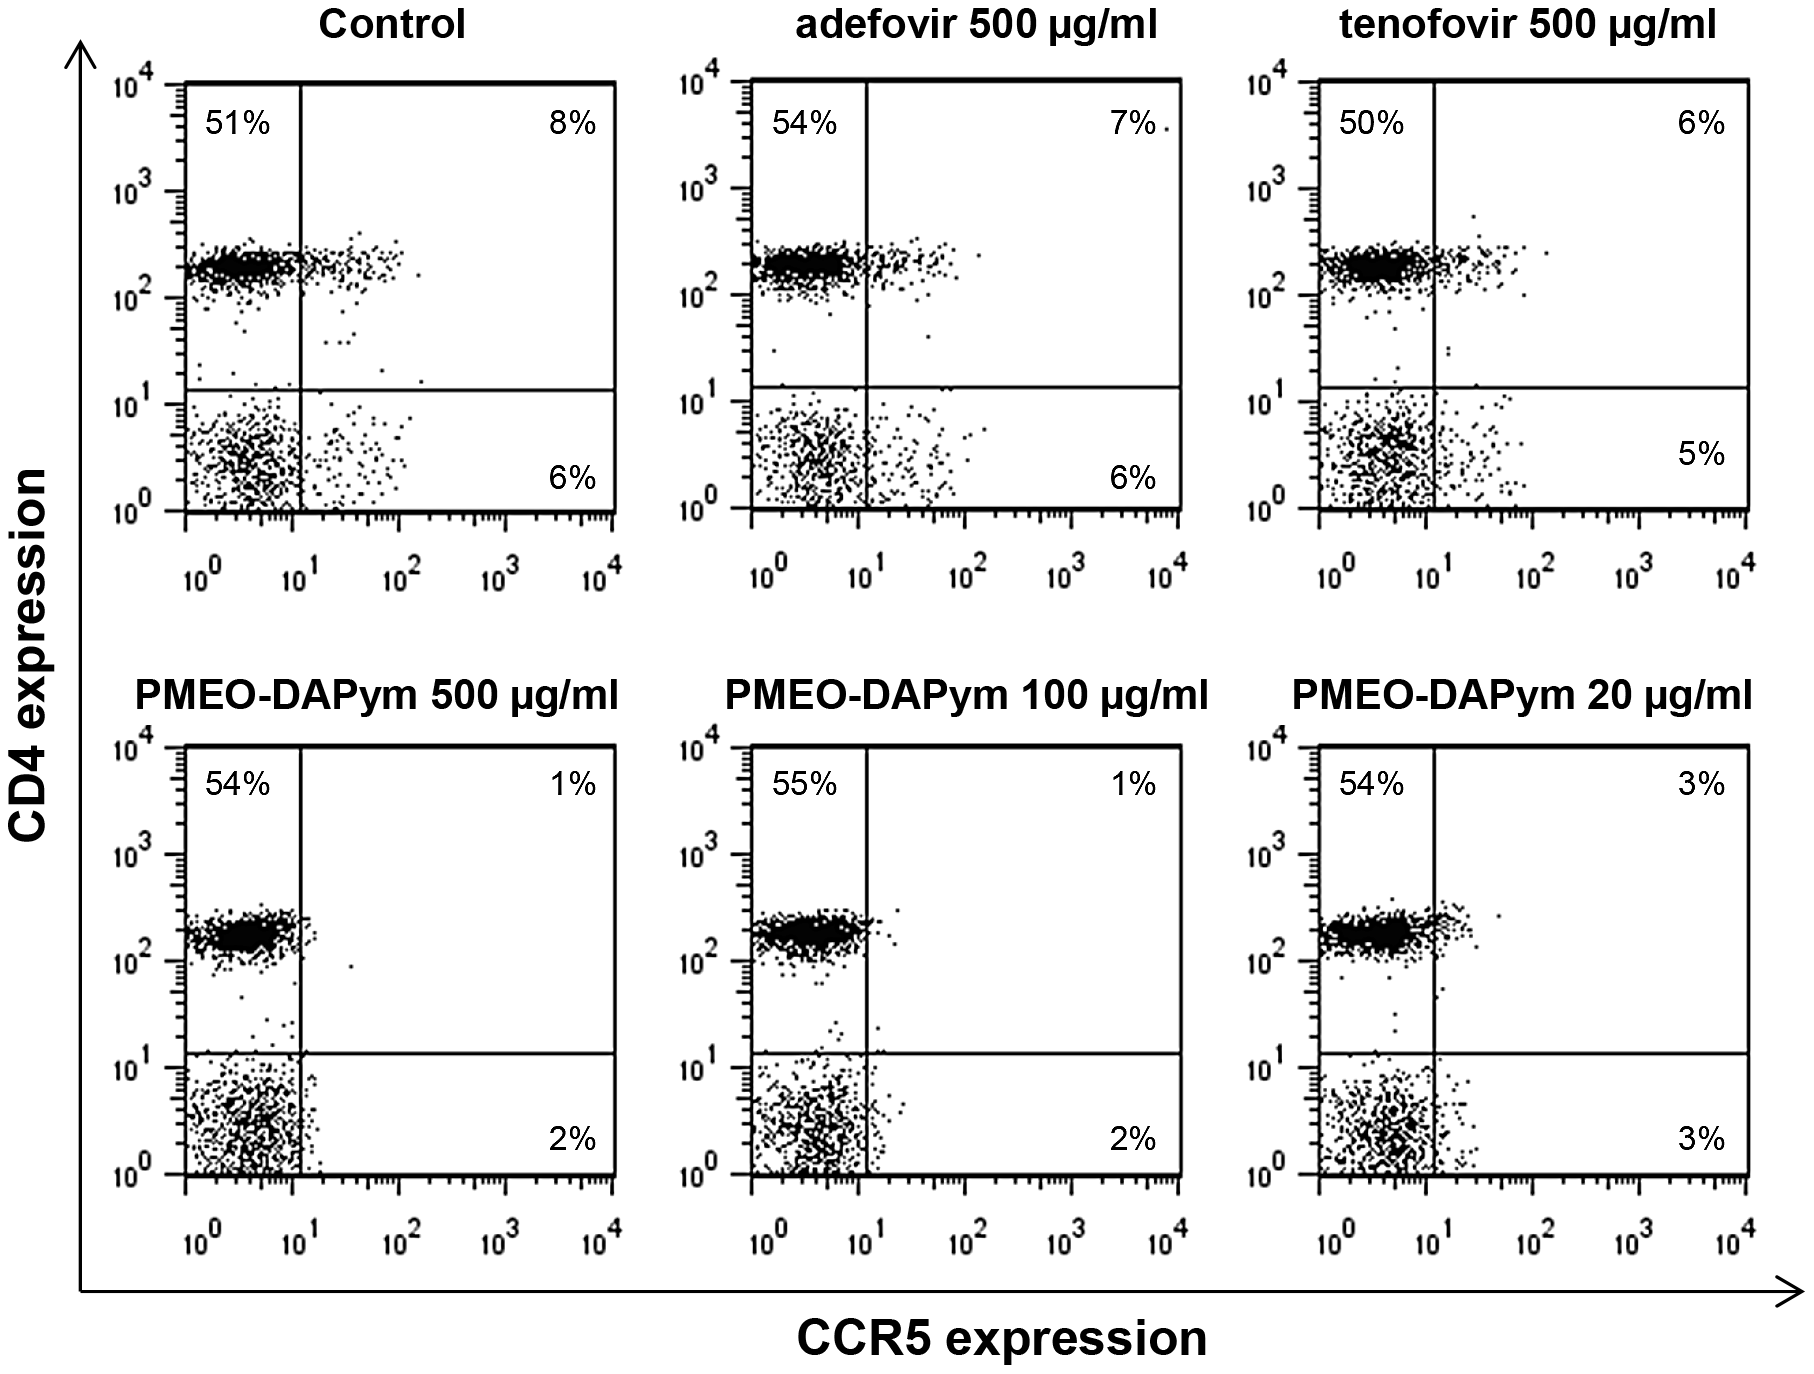 Expression of the HIV-1 coreceptor CCR5 on PBMCs after treatment with adefovir, tenofovir, or PMEO-DAPym.